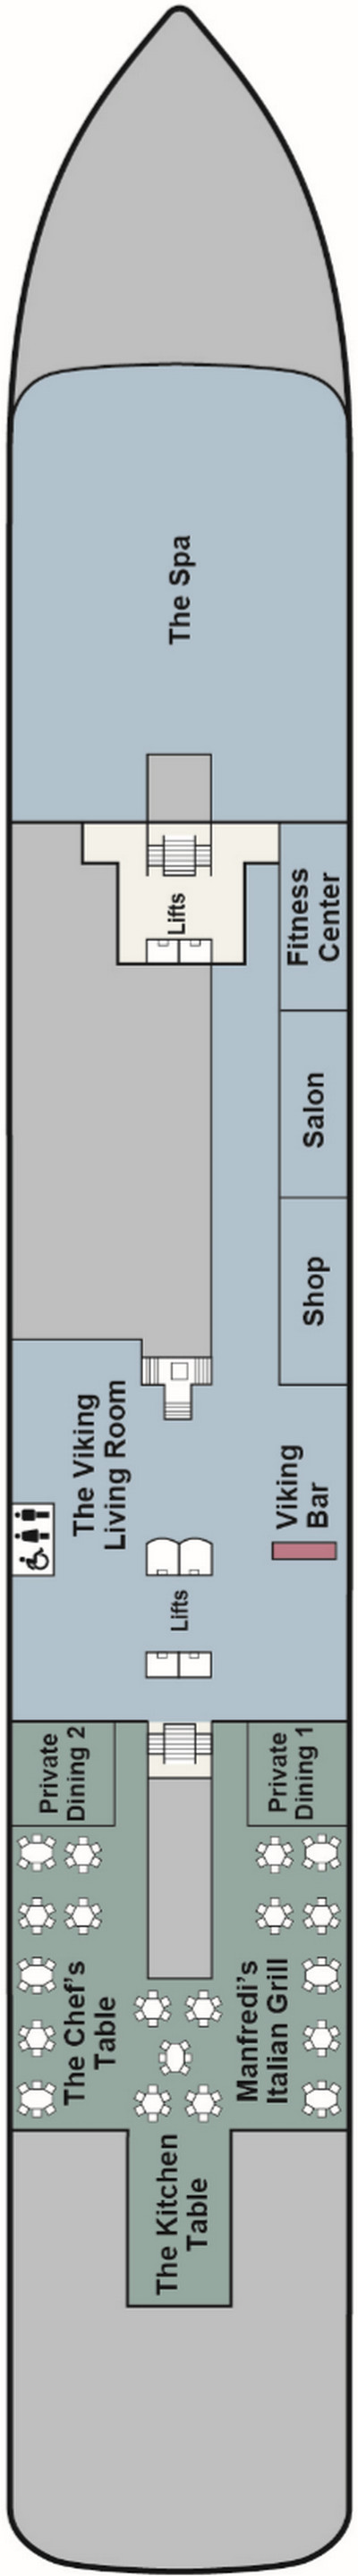 Viking Star Deck 1 layout